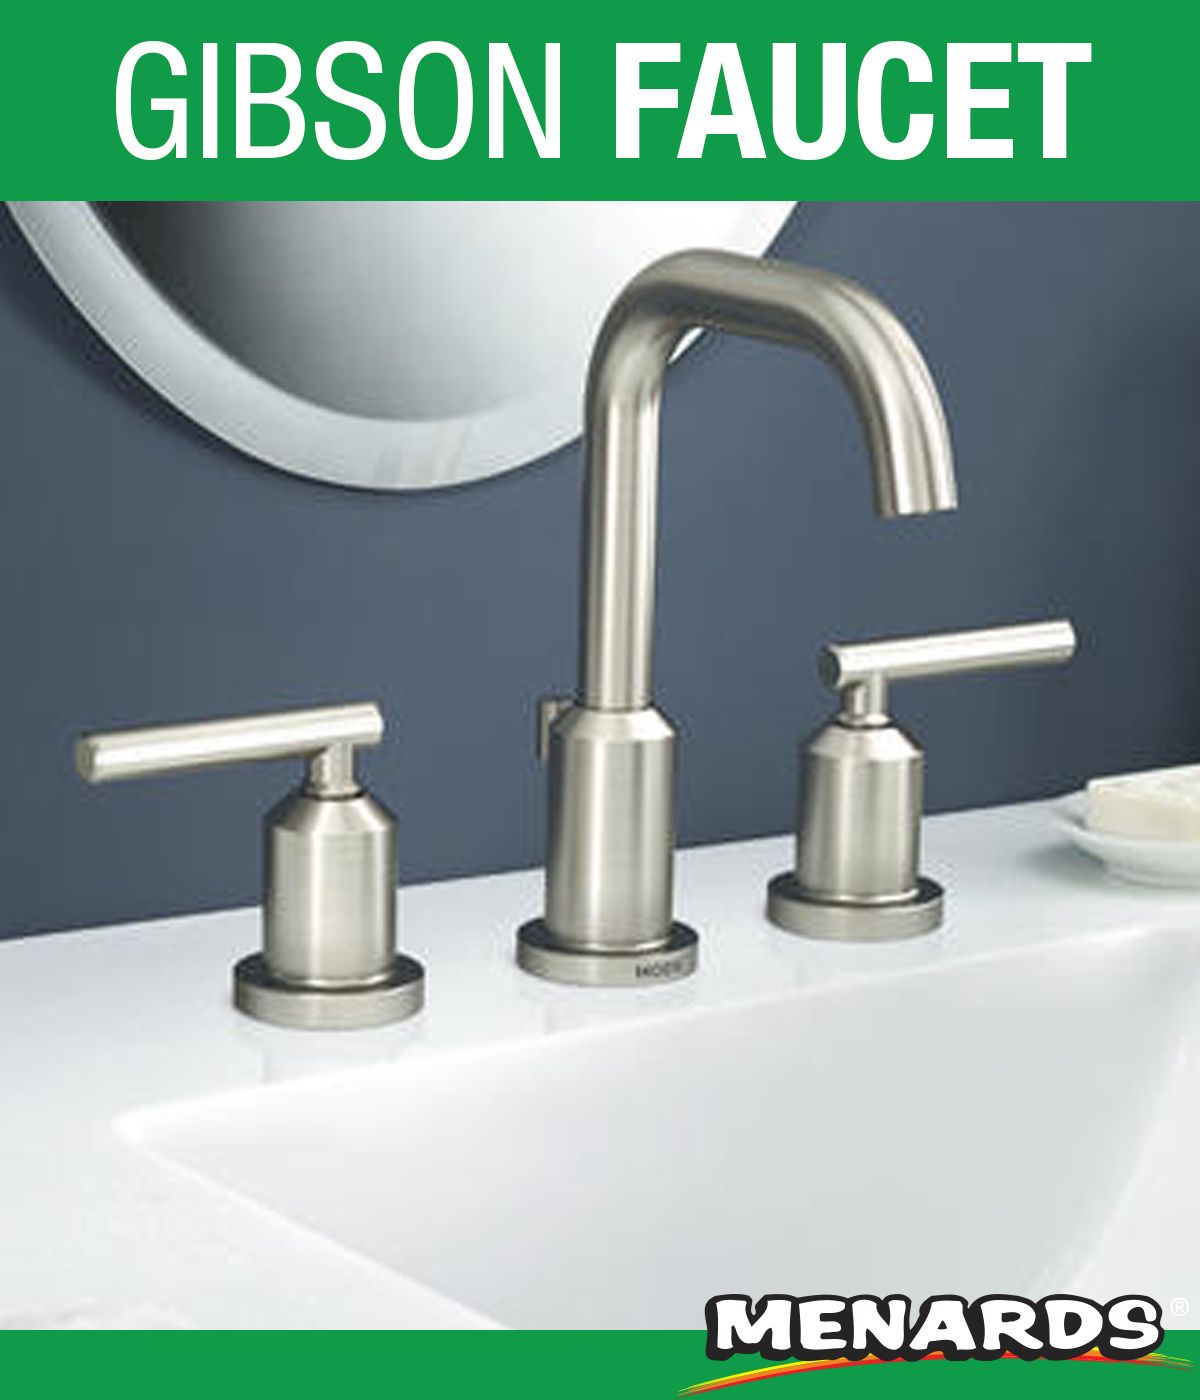 For An Industrial Look For Your Bathroom Try The Moen Gibson